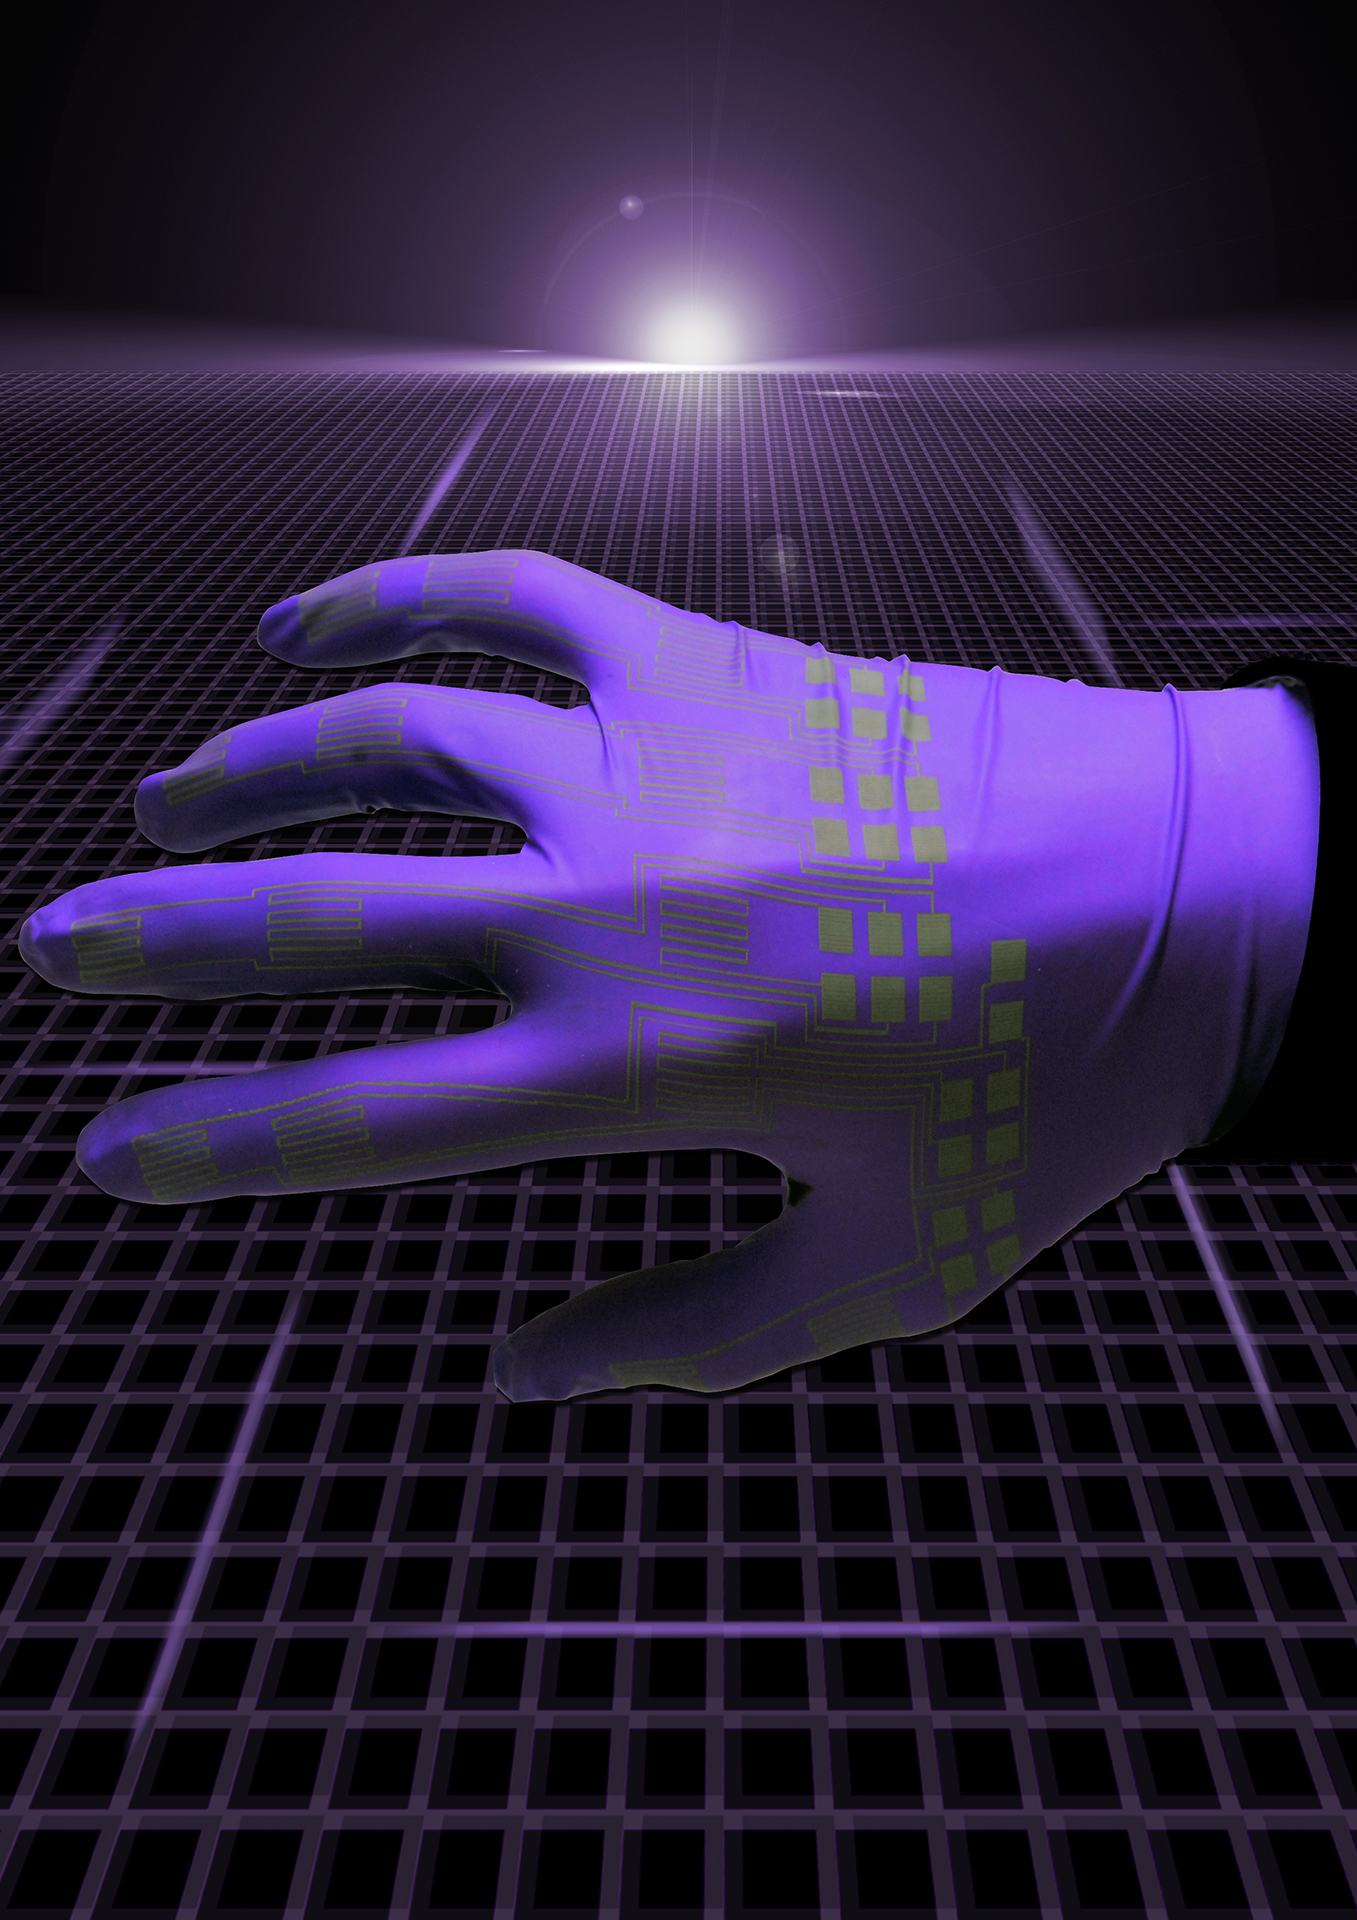 Color printing purdue - Inkjet Printed Liquid Metal Could Bring Wearable Tech Soft Robotics